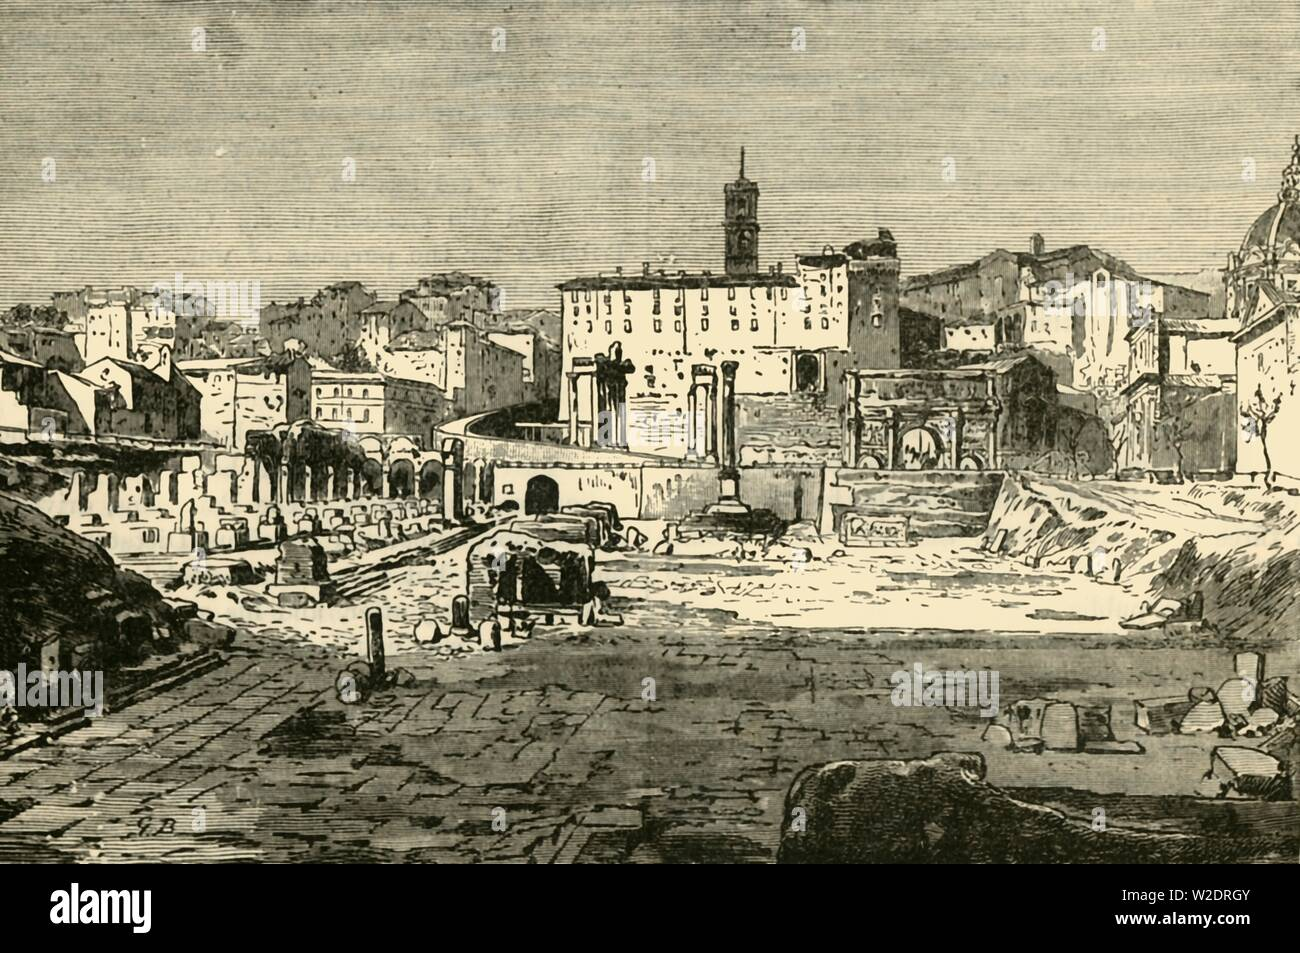 """'The Forum at Rome', 1890. From """"Cassell's Illustrated Universal History Vol. II - Rome"""", by Edmund Ollier. [Cassell and Company, Limited, London, Paris and Melbourne, 1890] - Stock Image"""